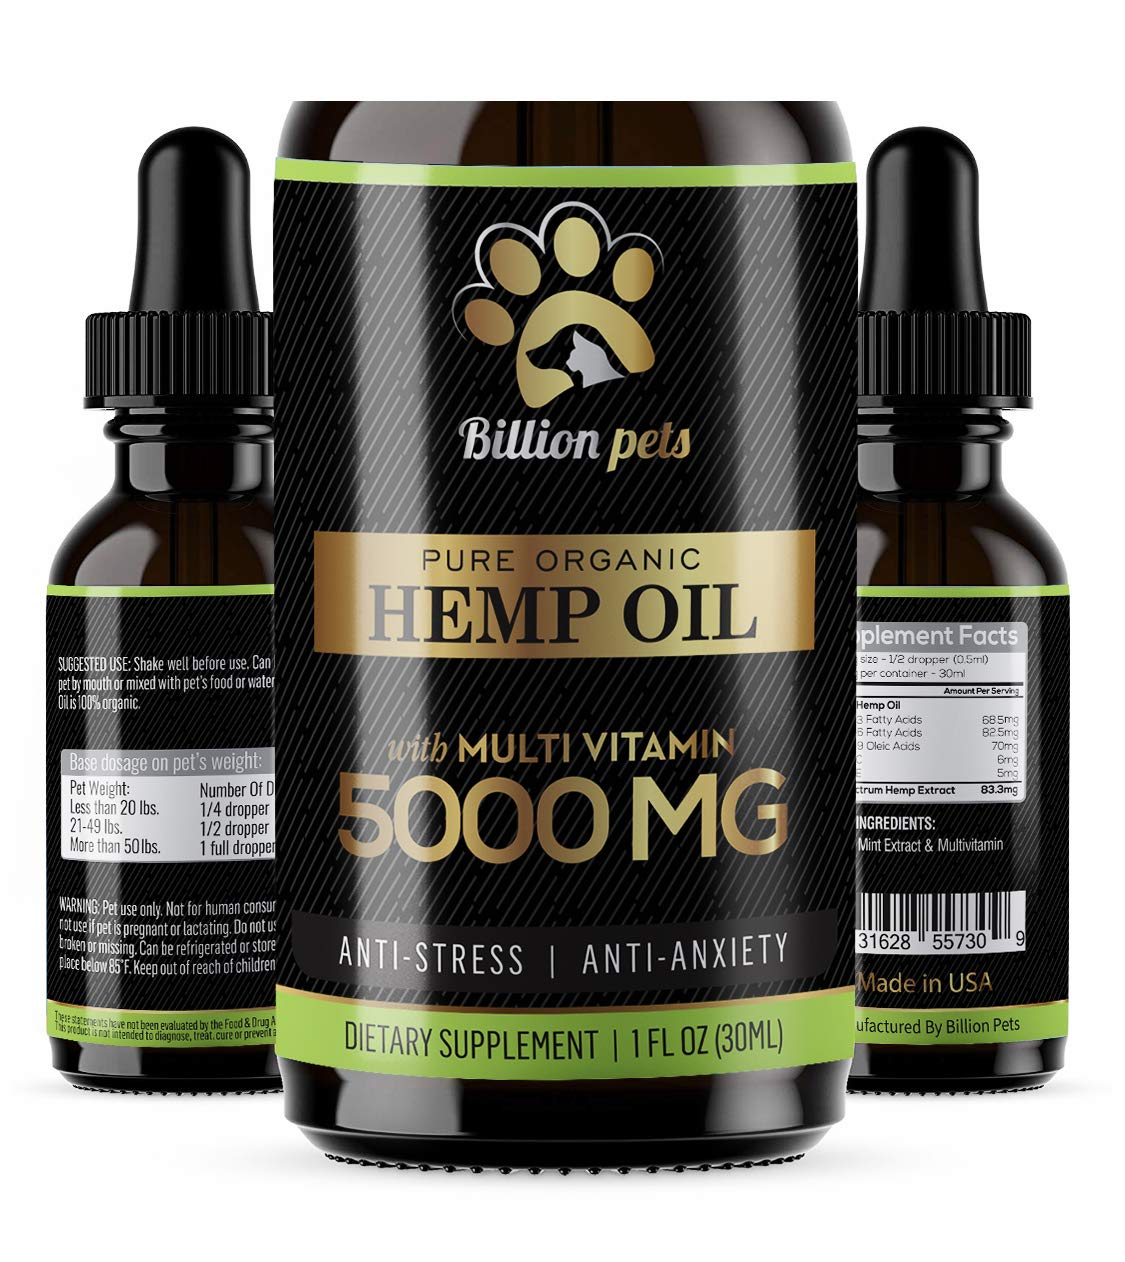 Billion Pets - Hemp Oil Dogs Cats - 5000mg - Separation Anxiety, Joint Pain, Stress Relief, Arthritis, Seizures, Chronic Pains, Anti-Inflammatory - Omega 3, 6, 9-100% Organic - Calming Drops by Billion Pets